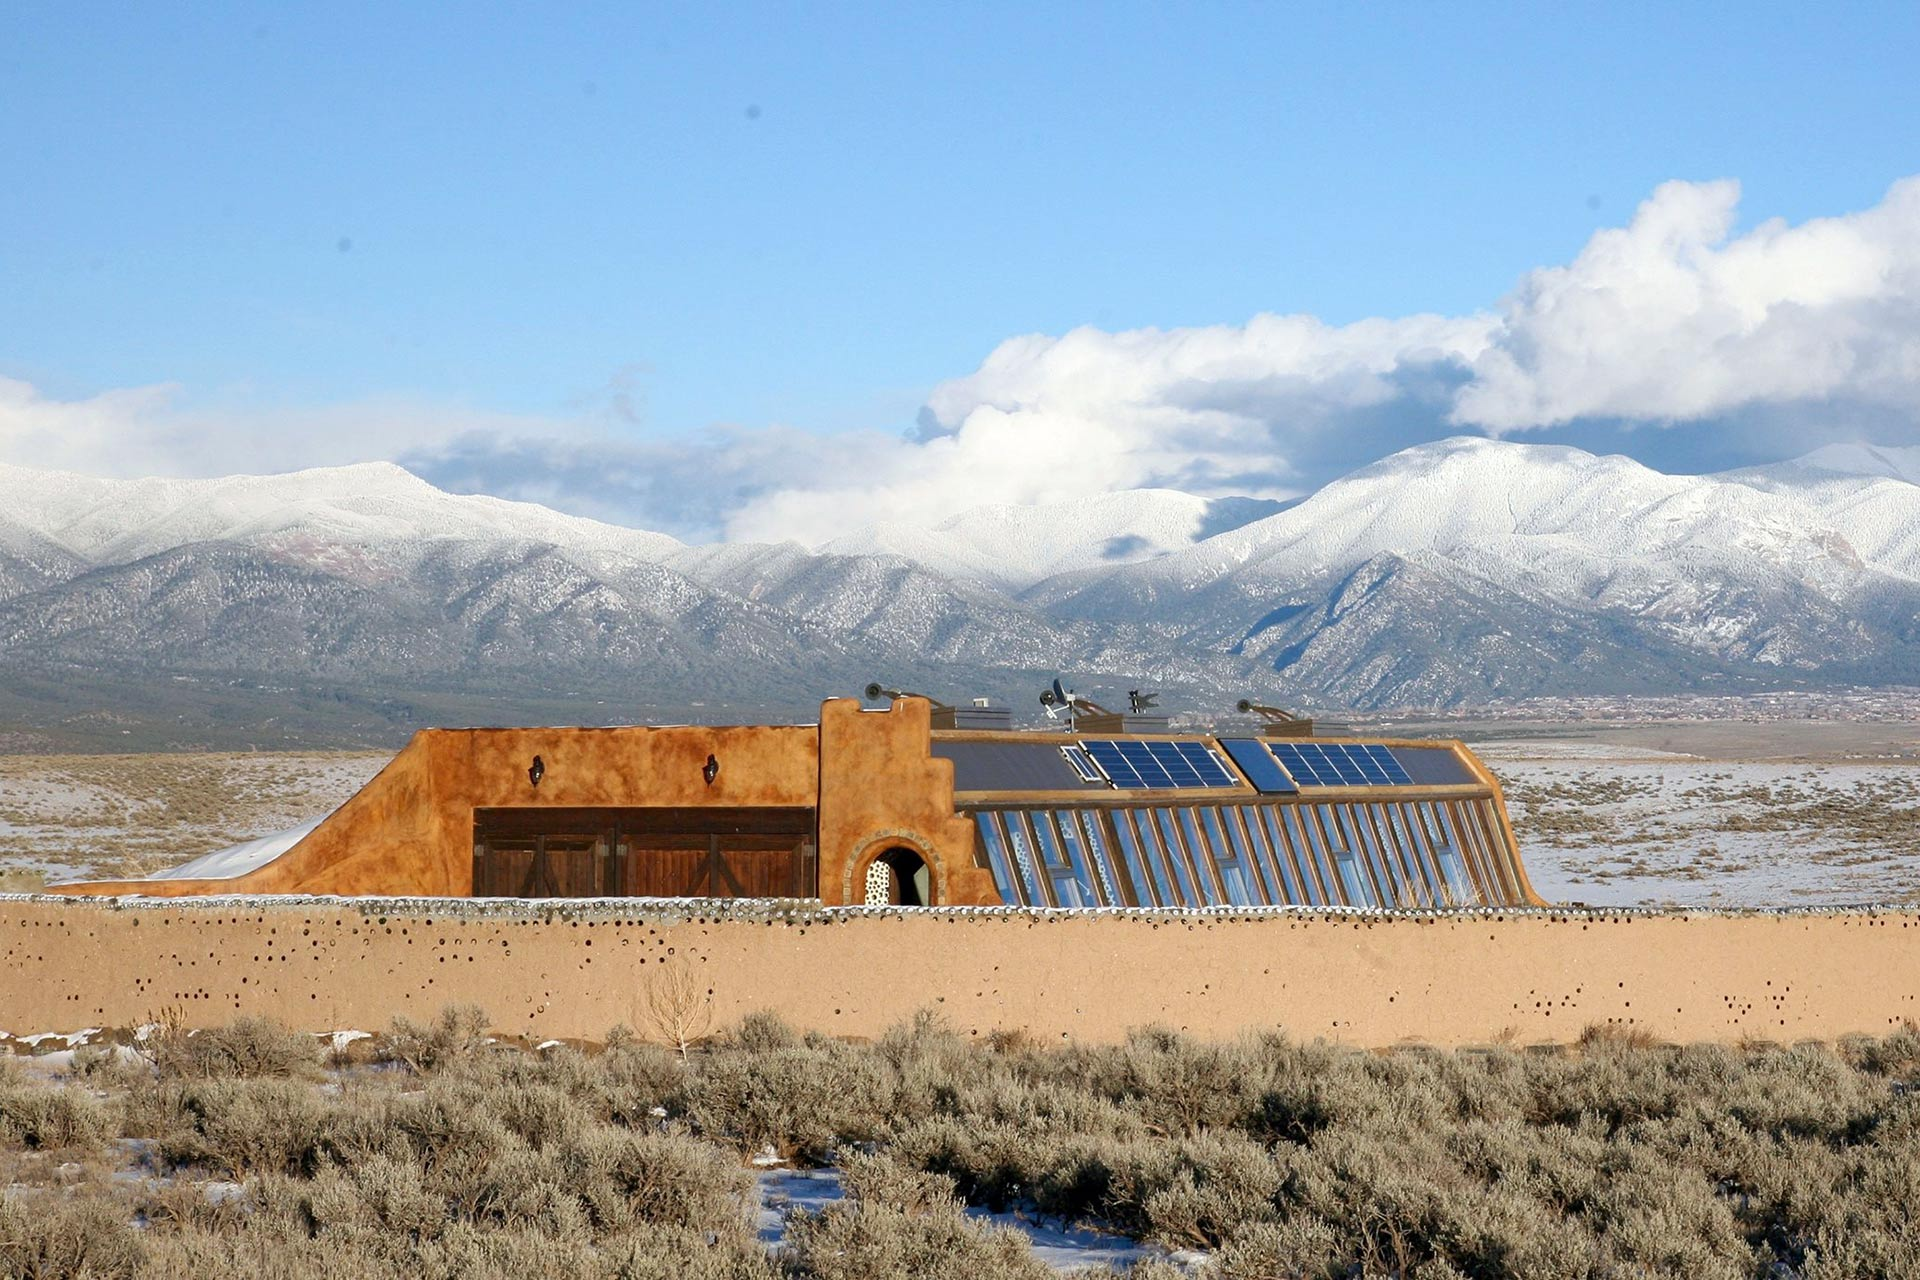 Earthship Biotecture in Taos, New Mexico; Courtesy of Earthship Biotecture